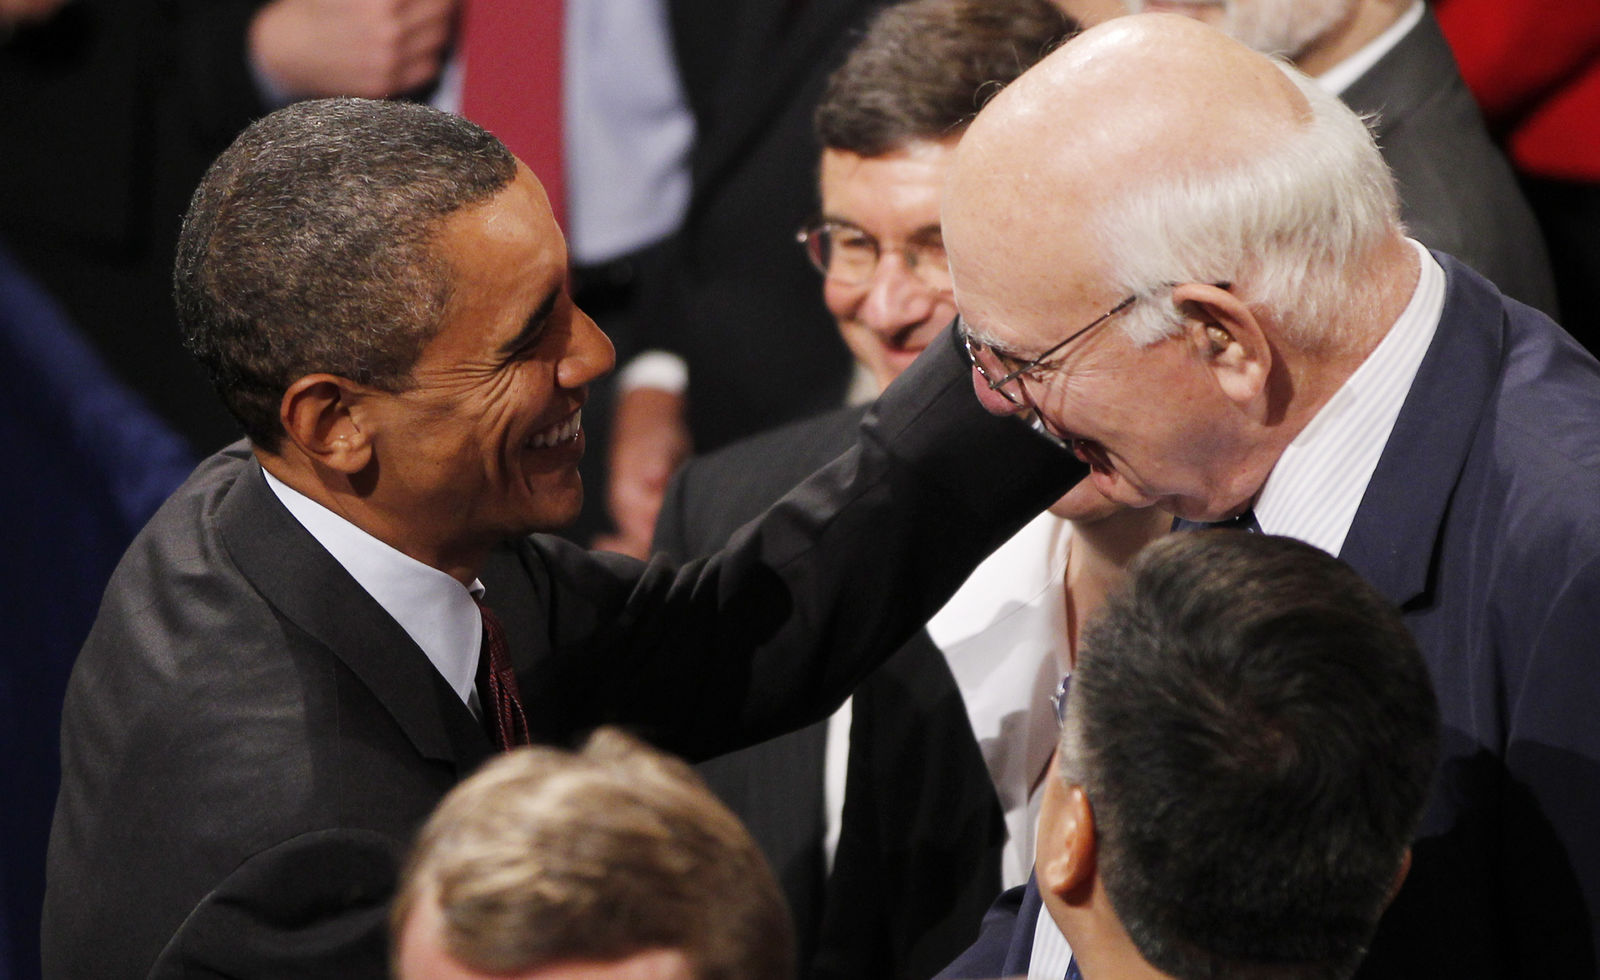 FILE - In this July 21, 2010, file photo President Barack Obama greets Paul Volcker, Chair of the President's Economic Recovery Advisory Board, after Obama signed the Dodd-Frank Wall Street Reform and Consumer Protection financial reform bill at the Ronald Reagan Building in Washington. Volcker, the former Federal Reserve chairman died on Sunday, Dec. 8, 2019, according to his office, He was 92.{ }(AP Photo/Charles Dharapak, File)